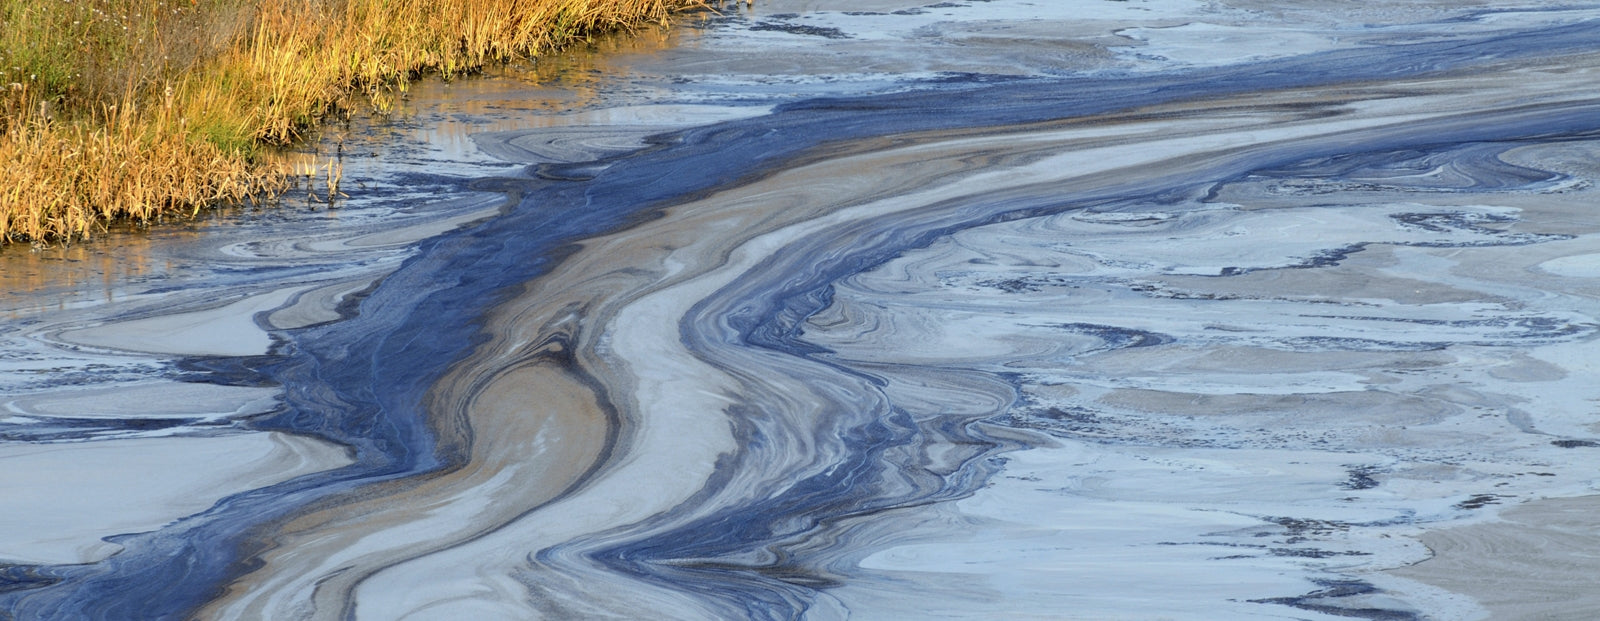 The EPA and Encore Oils reached a settlement to reduce the risk of oil spills